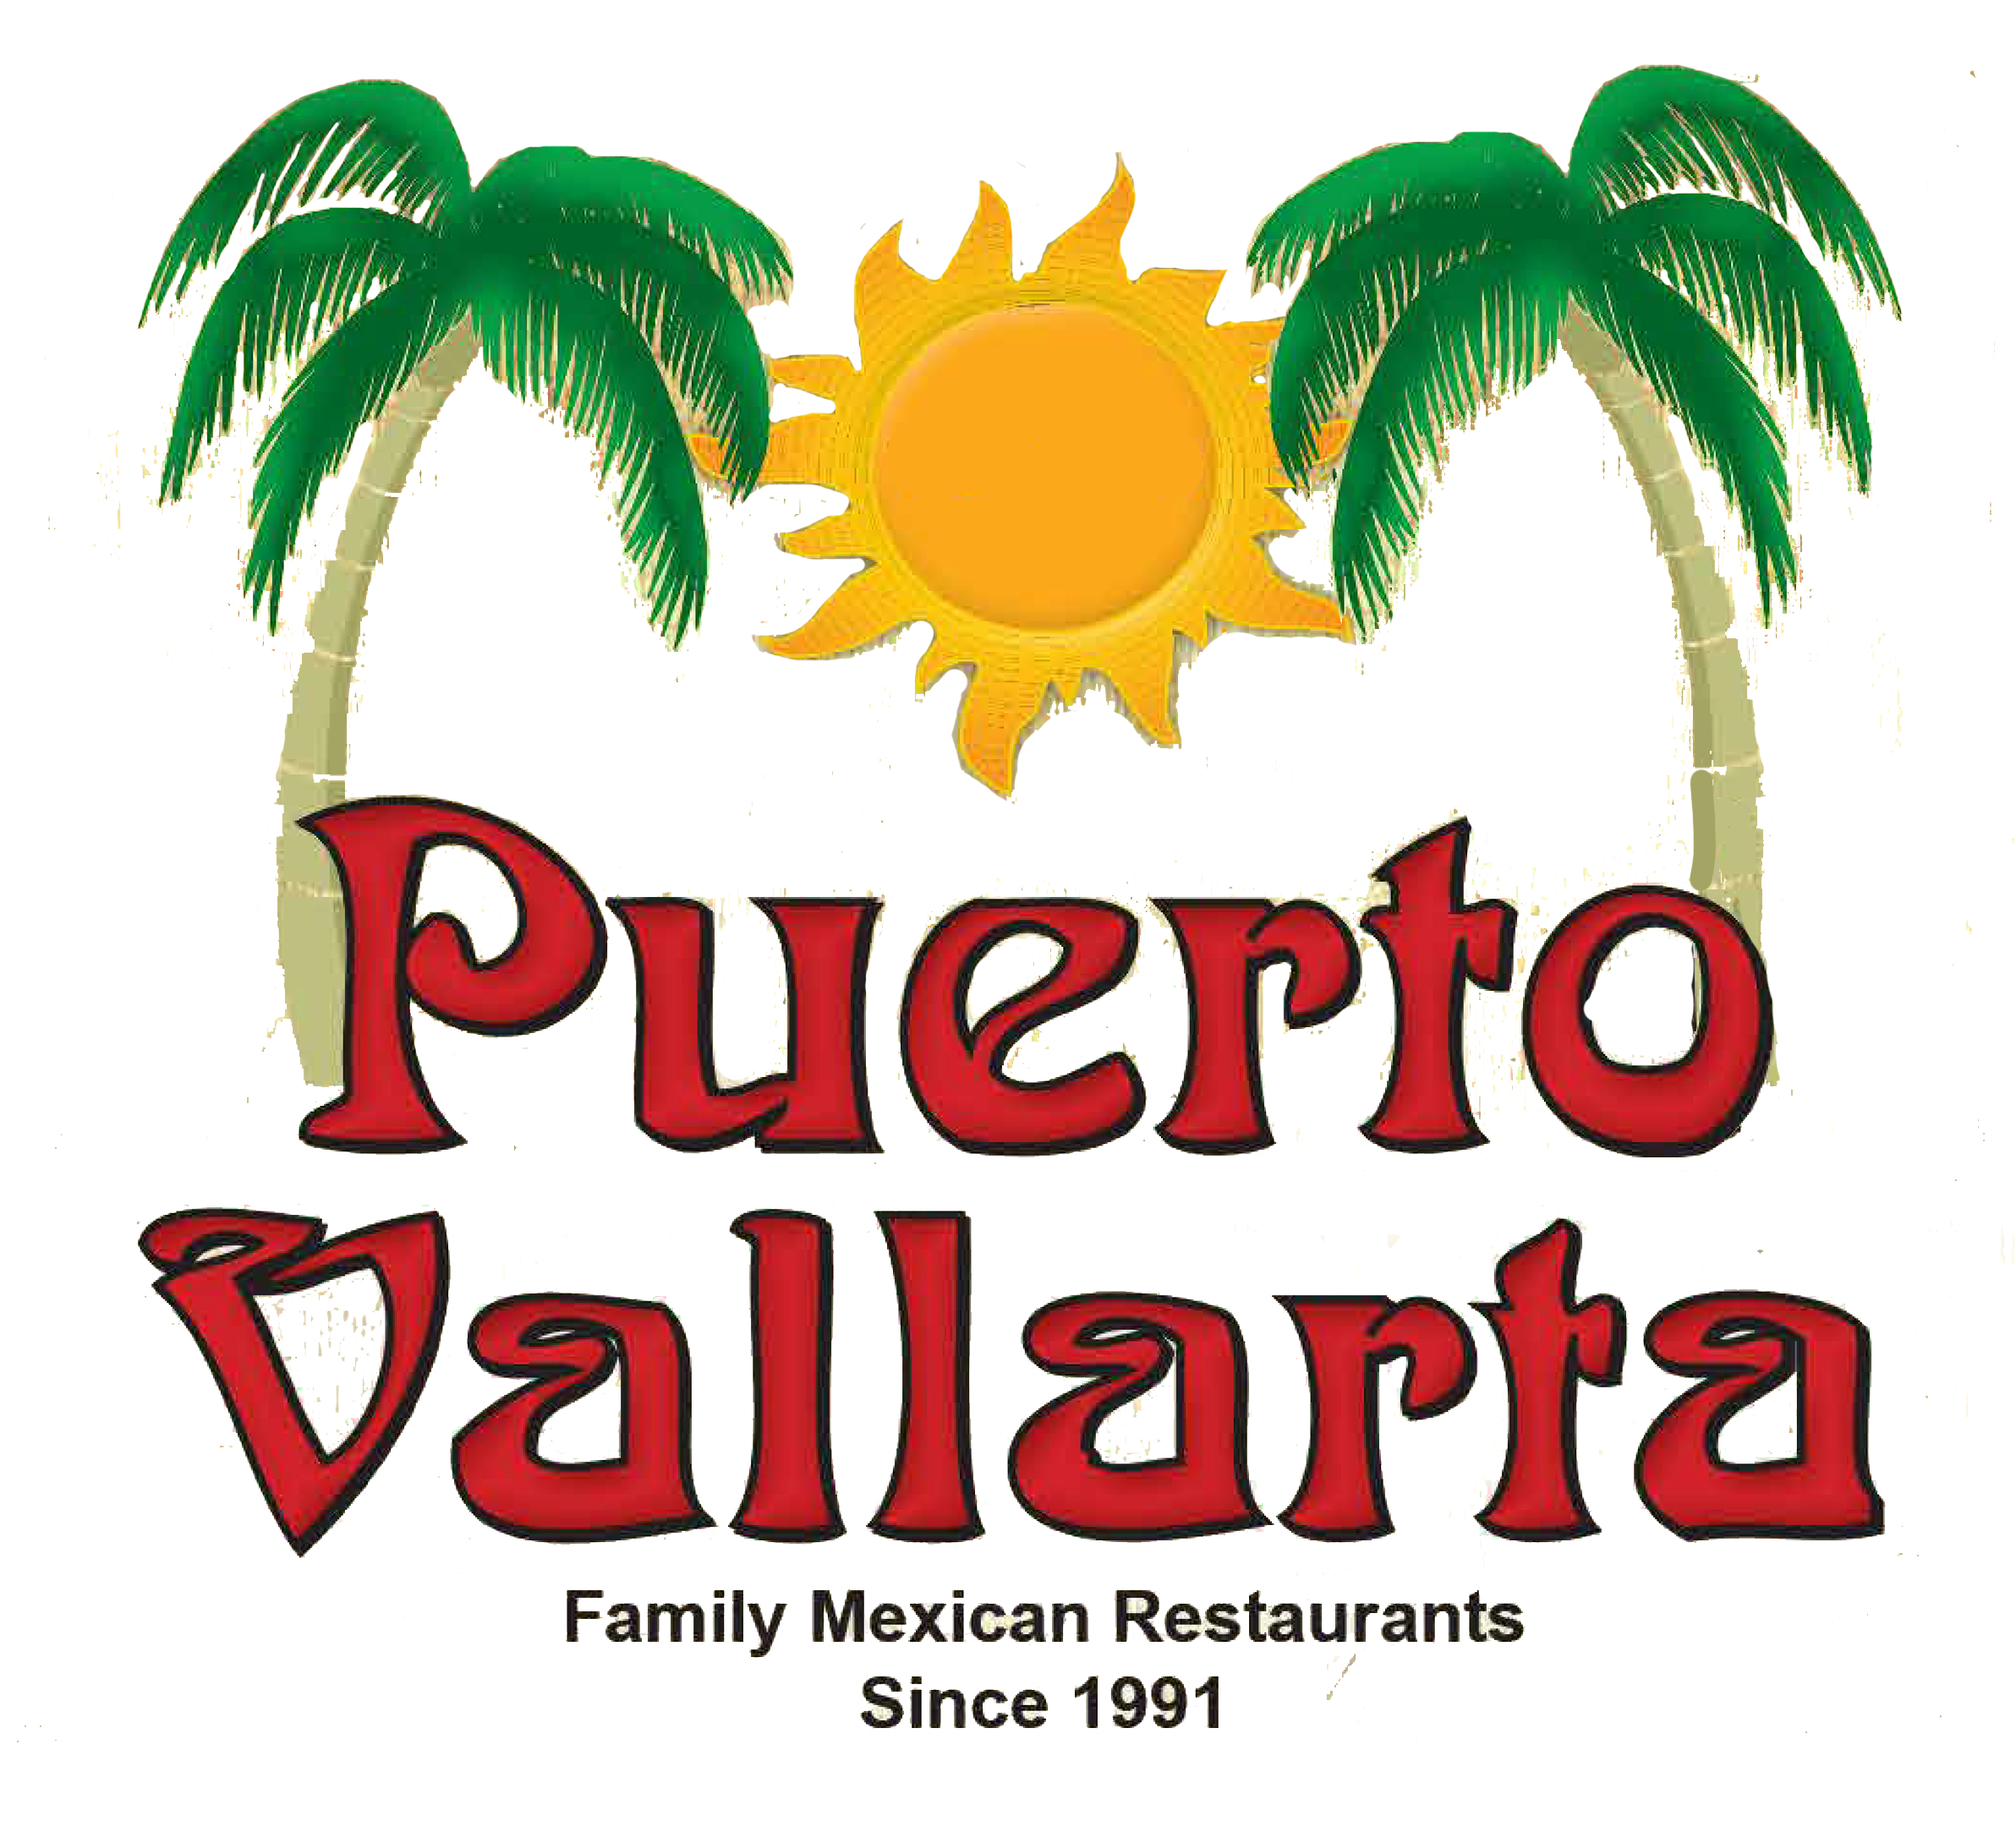 Puerto Vallarta Family Mexican Restaurants Since 1991